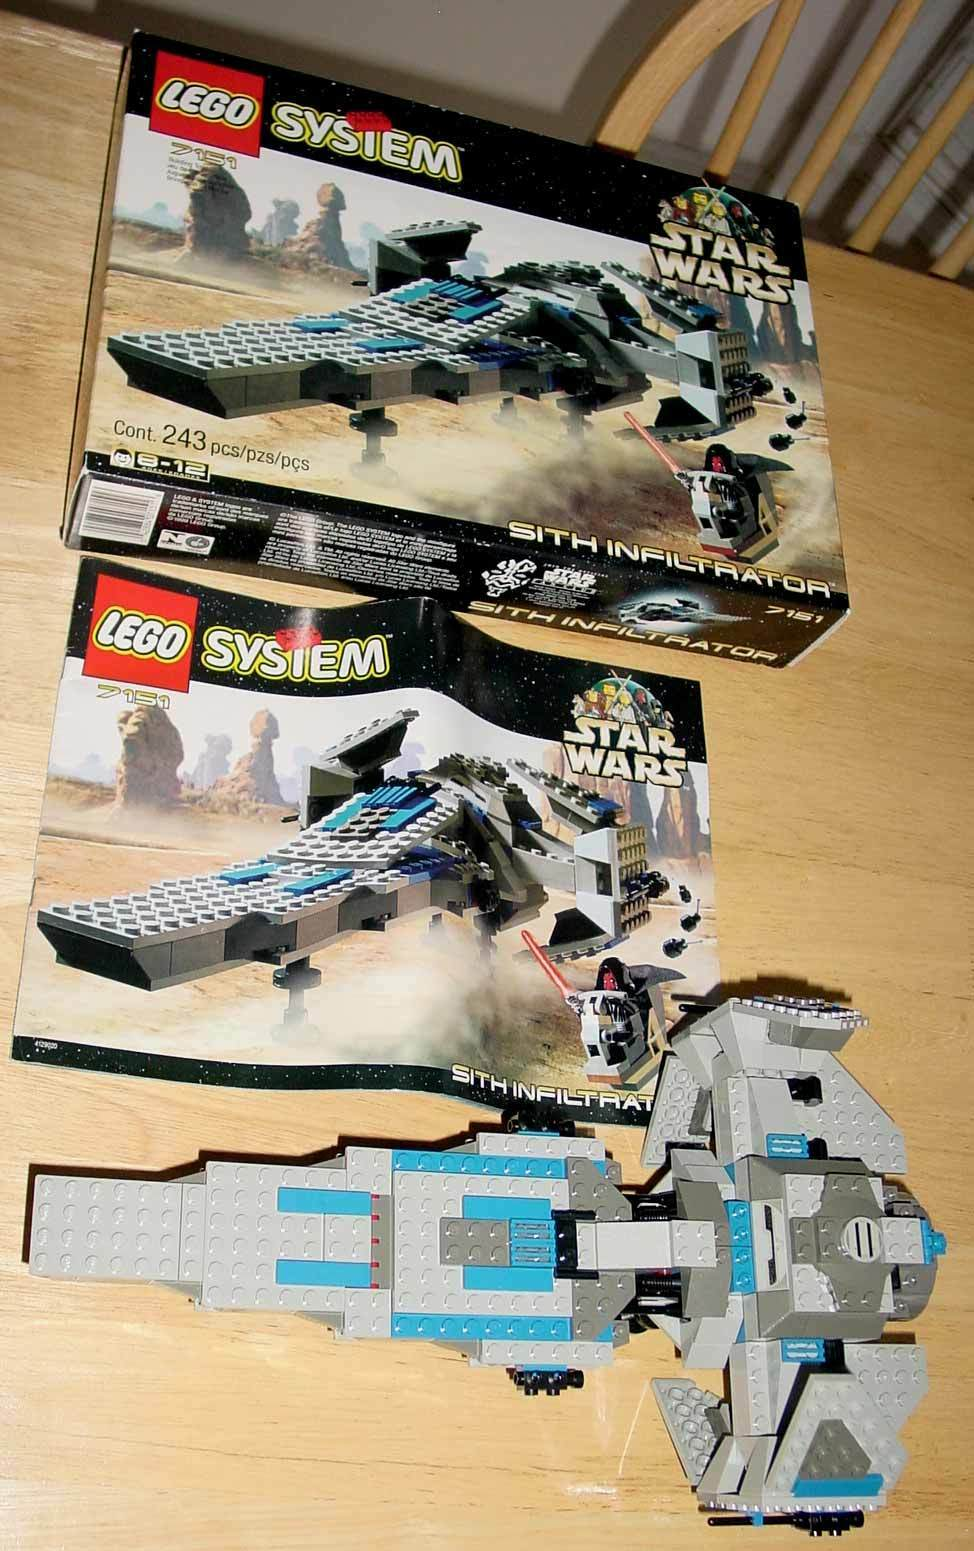 LEGO 7151 STAR WARS SITH INFILTRATOR COMPLETE - OPENED BOX - WITH INSTRUCTIONS